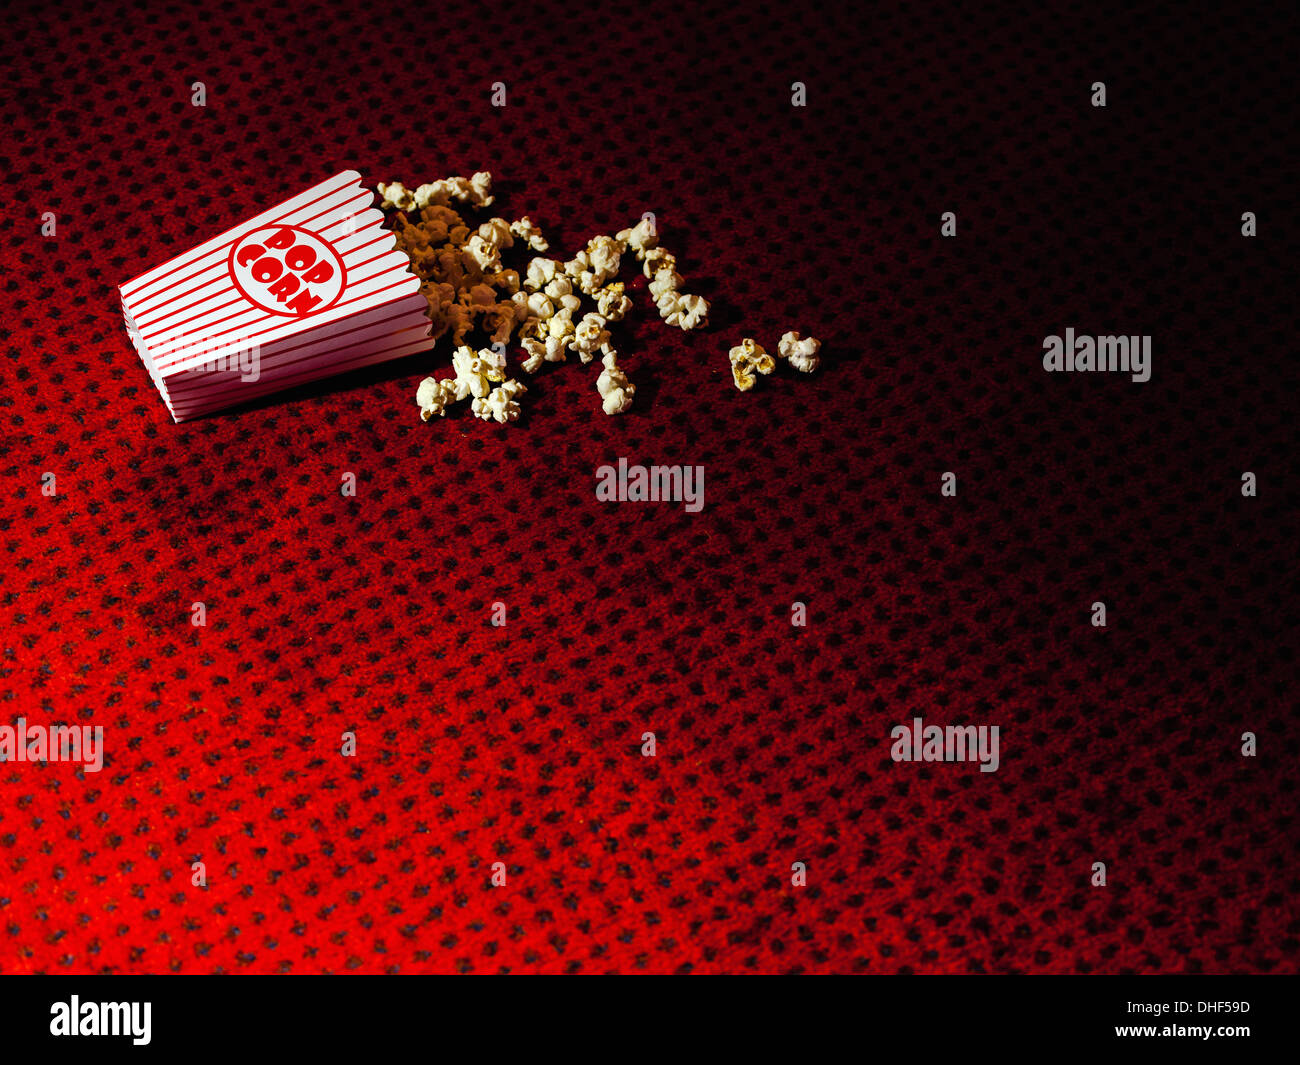 Spilled carton of popcorn on cinema carpet - Stock Image